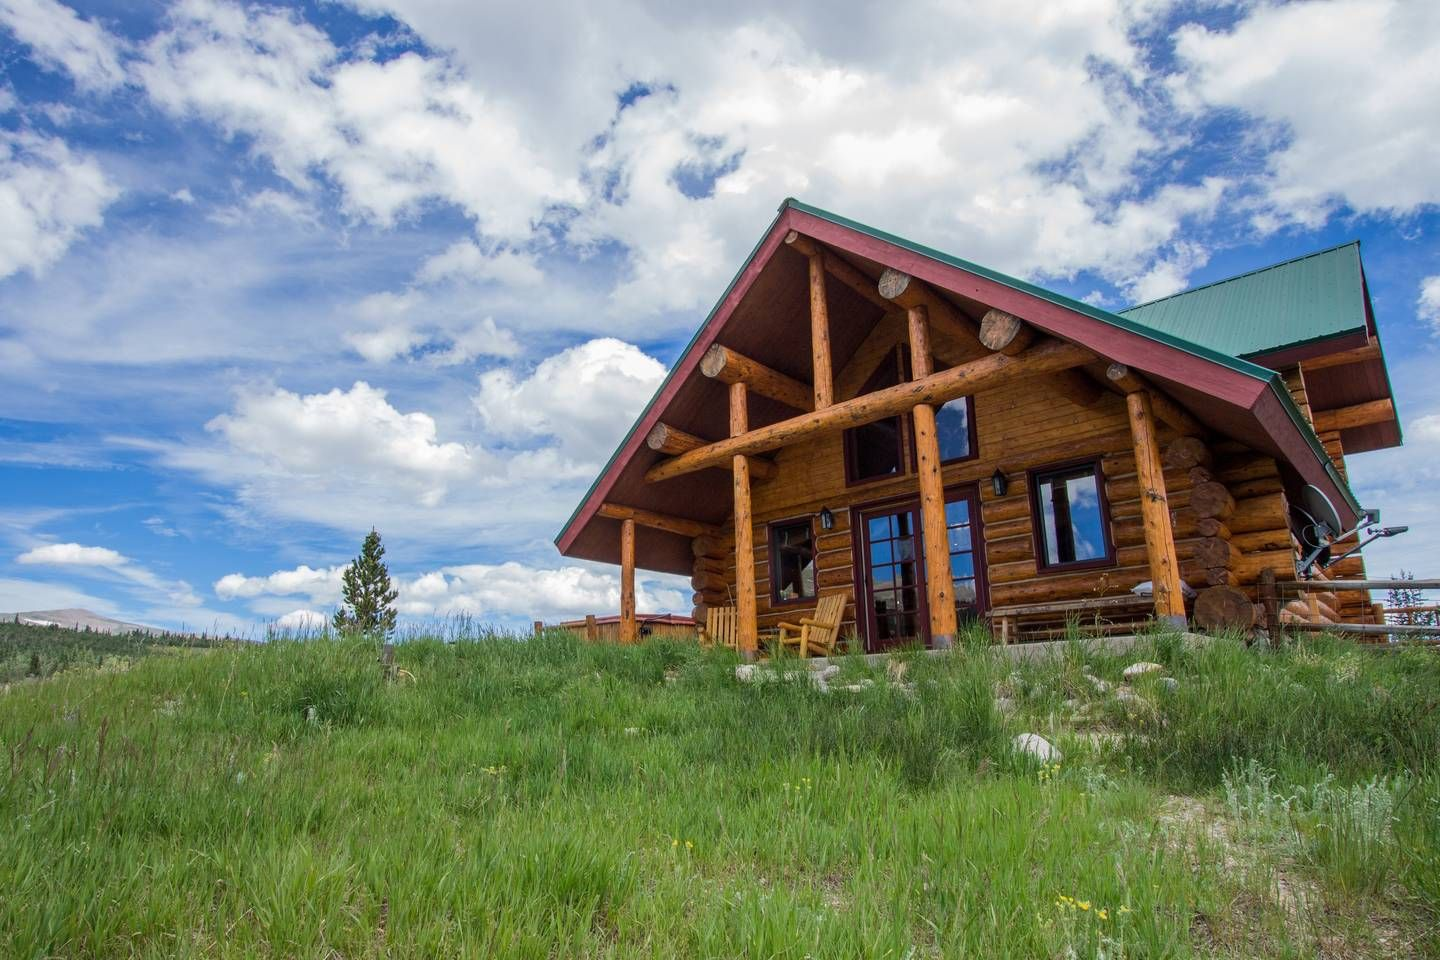 Log Cabin With Mountain Views Houses For Rent In Fairplay Colorado United States Cabin Colorado Cabins Renting A House